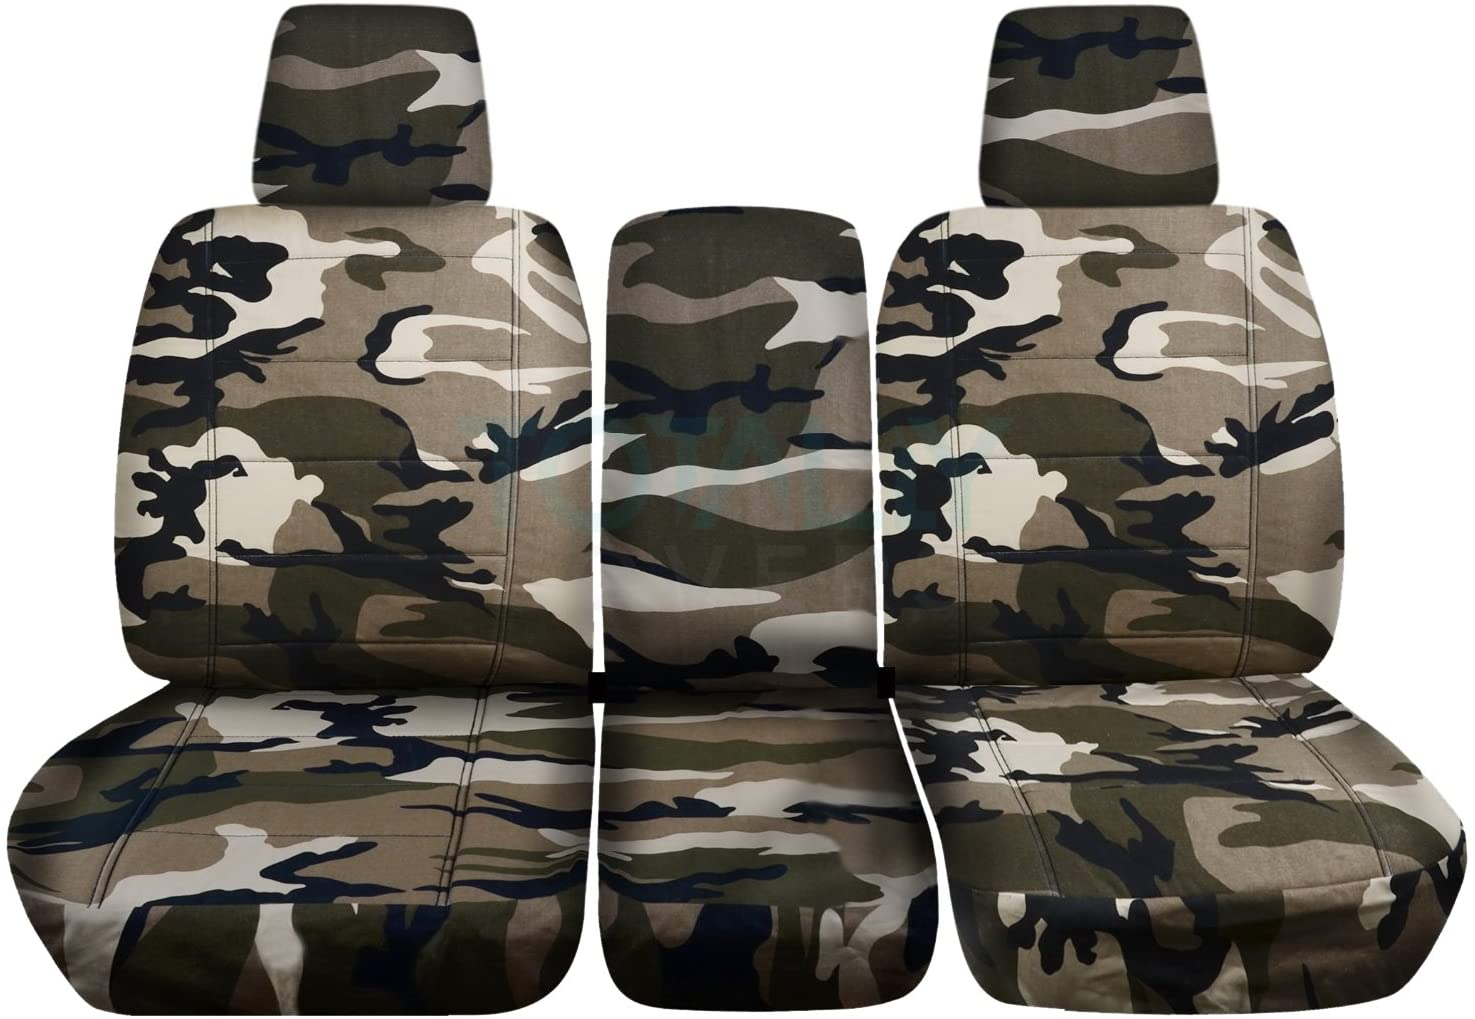 Totally Covers Compatible with 2004-2008 Ford F-150 Camo Truck Seat Covers (Front 40/20/40 Split Bench) w Center Console/Armrest, w/wo Integrated Seat Belts: Tan & Beige Camouflage F-Series F150